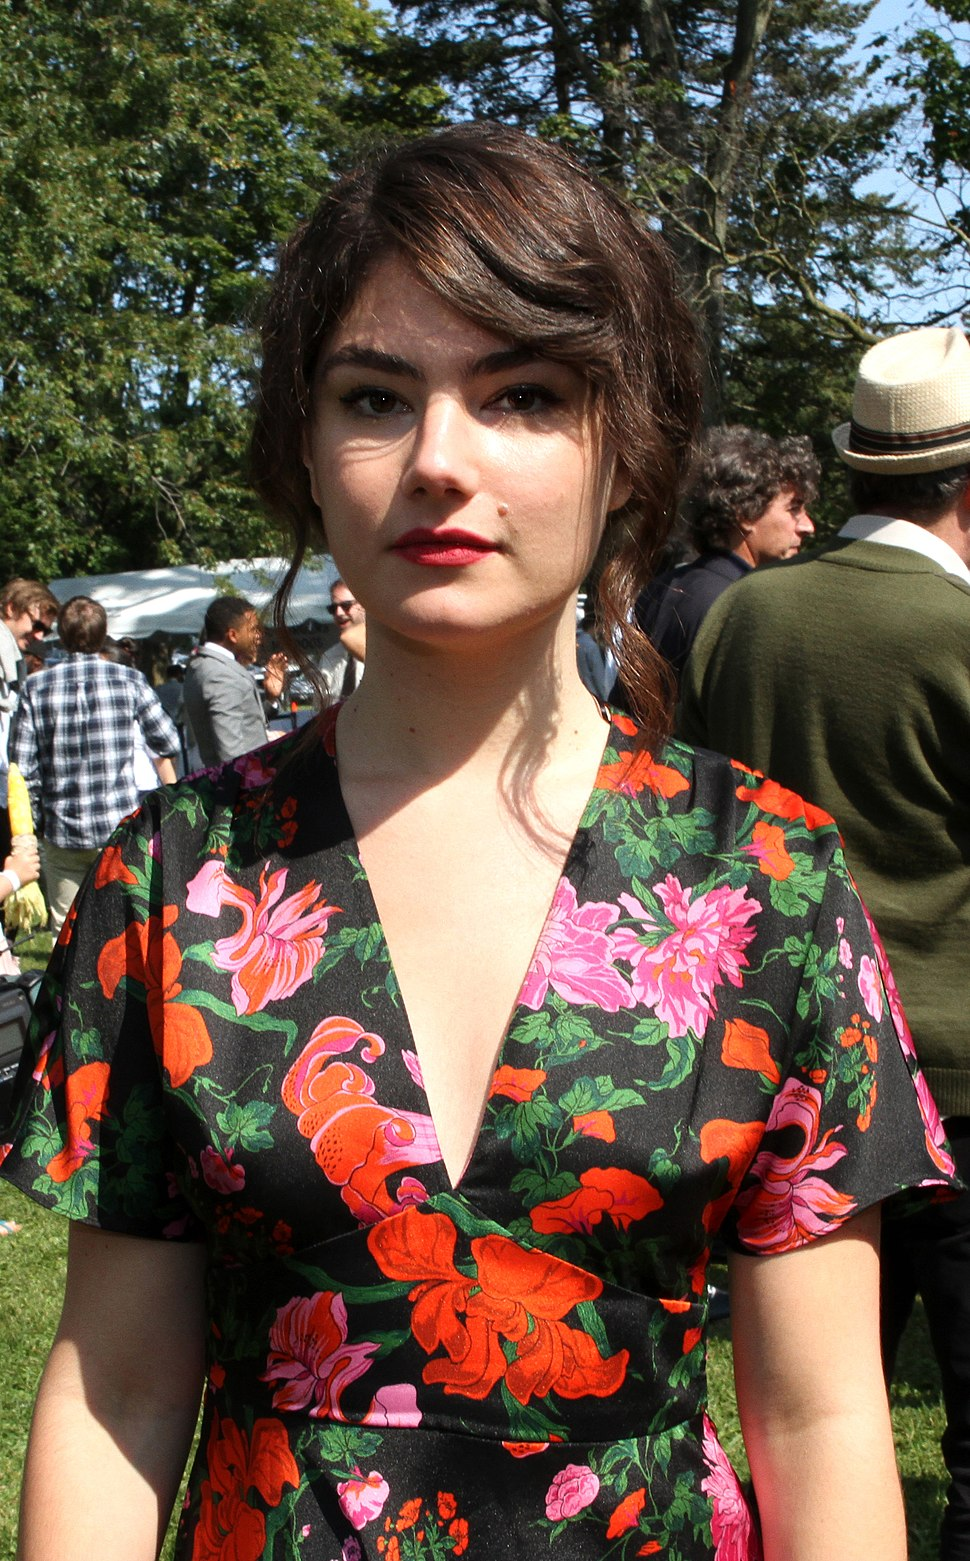 Katie Boland at the 2017 CFC Annual BBQ Fundraiser (36331880624) (cropped)